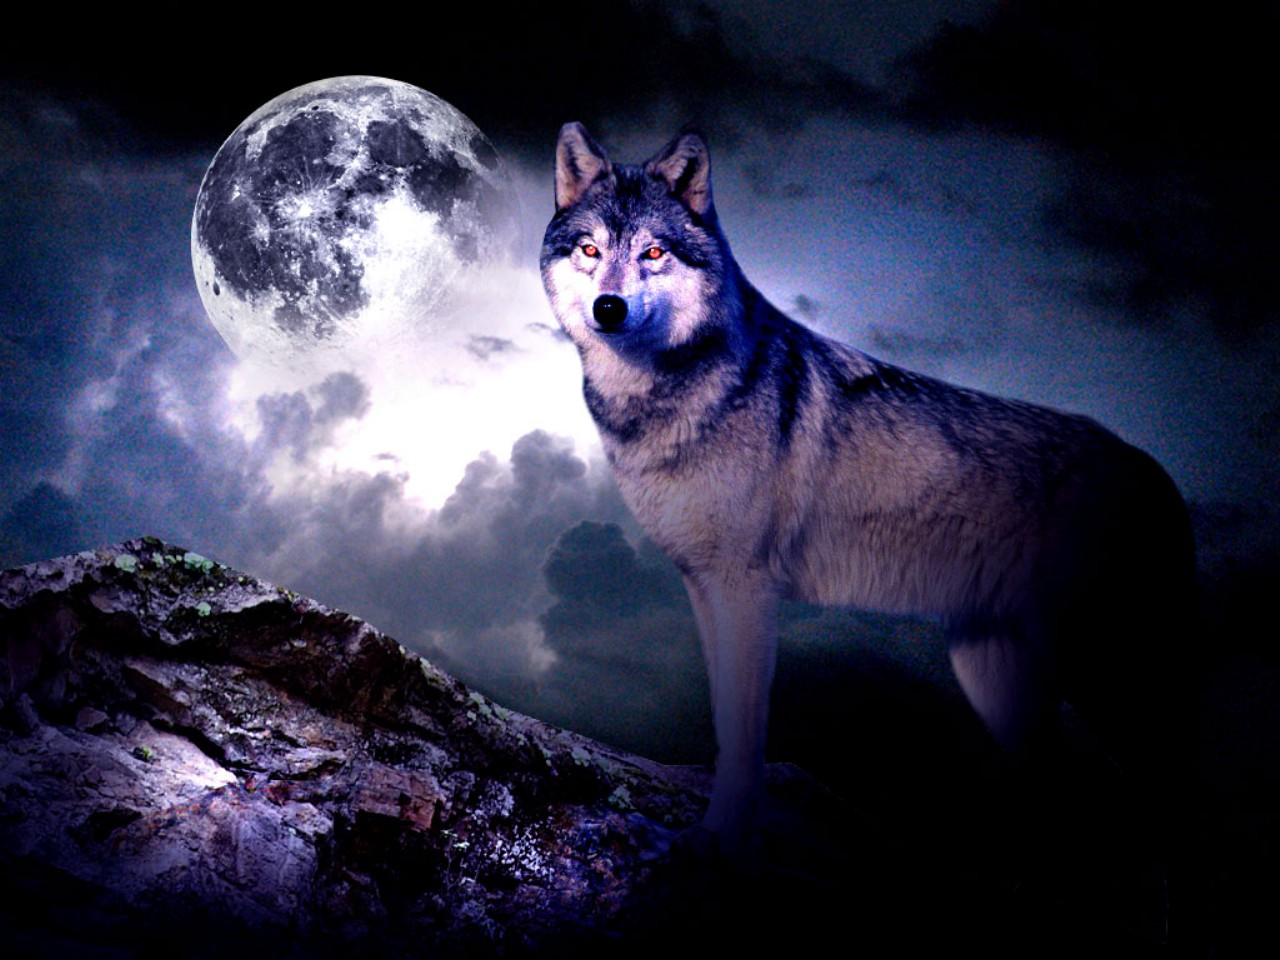 Wolf Moon Wallpaper 11056 Hd Wallpapers in Animals   Imagescicom 1280x960